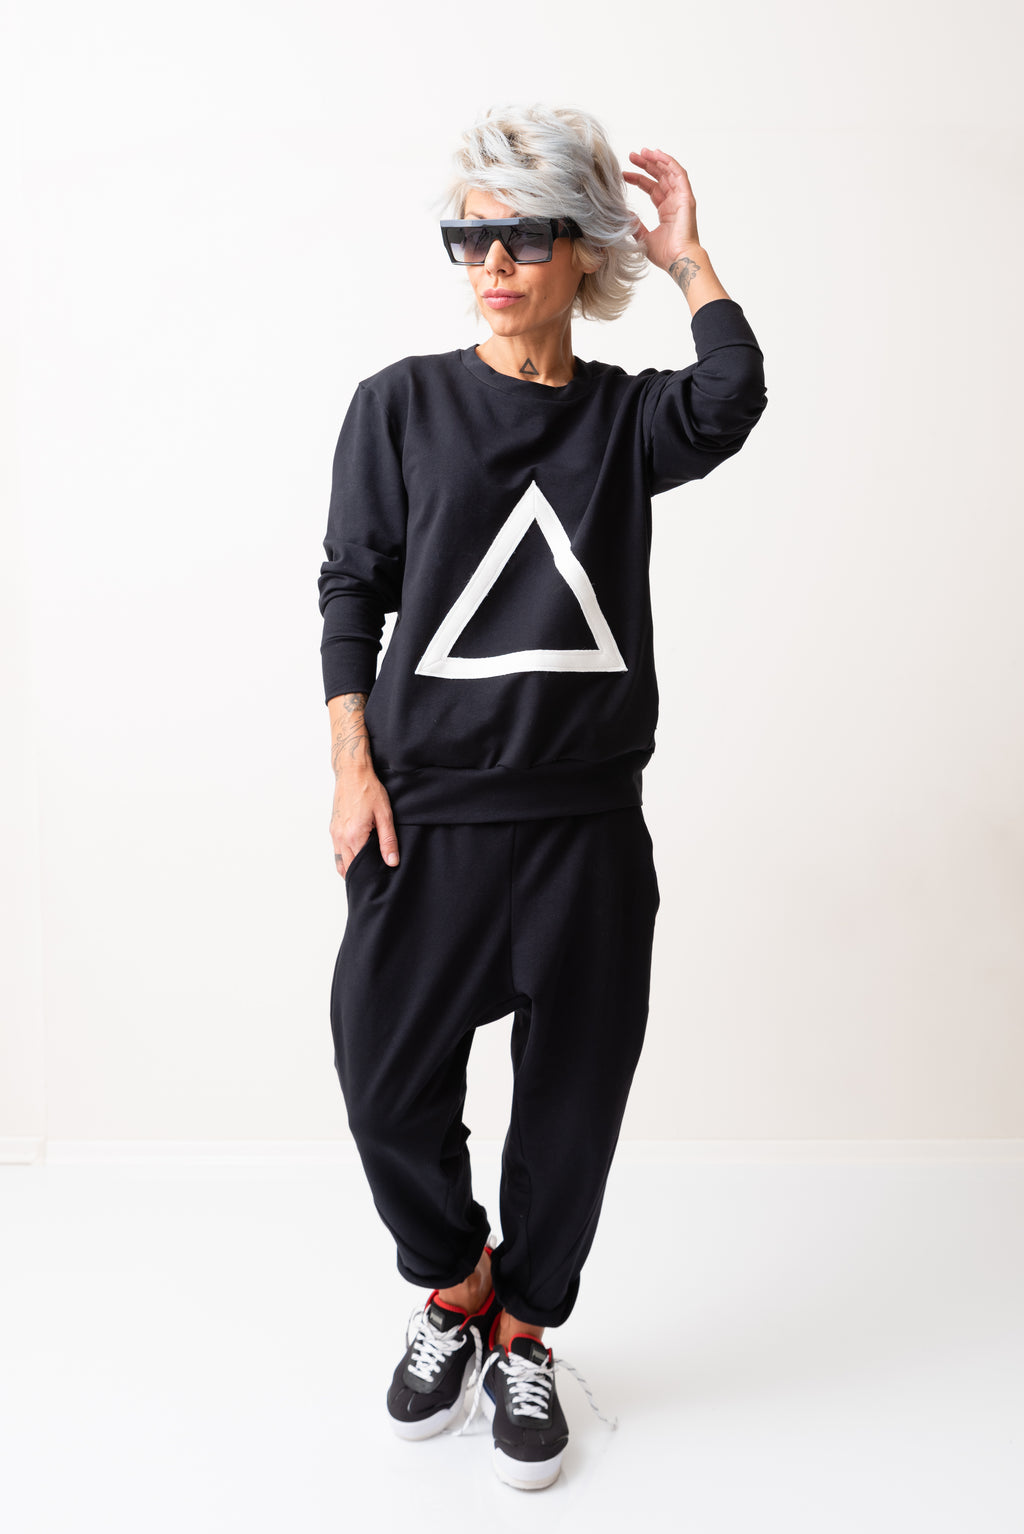 Black Two Piece Tracksuit - Pants and Top with long sleeves - Clothes By Locker Room